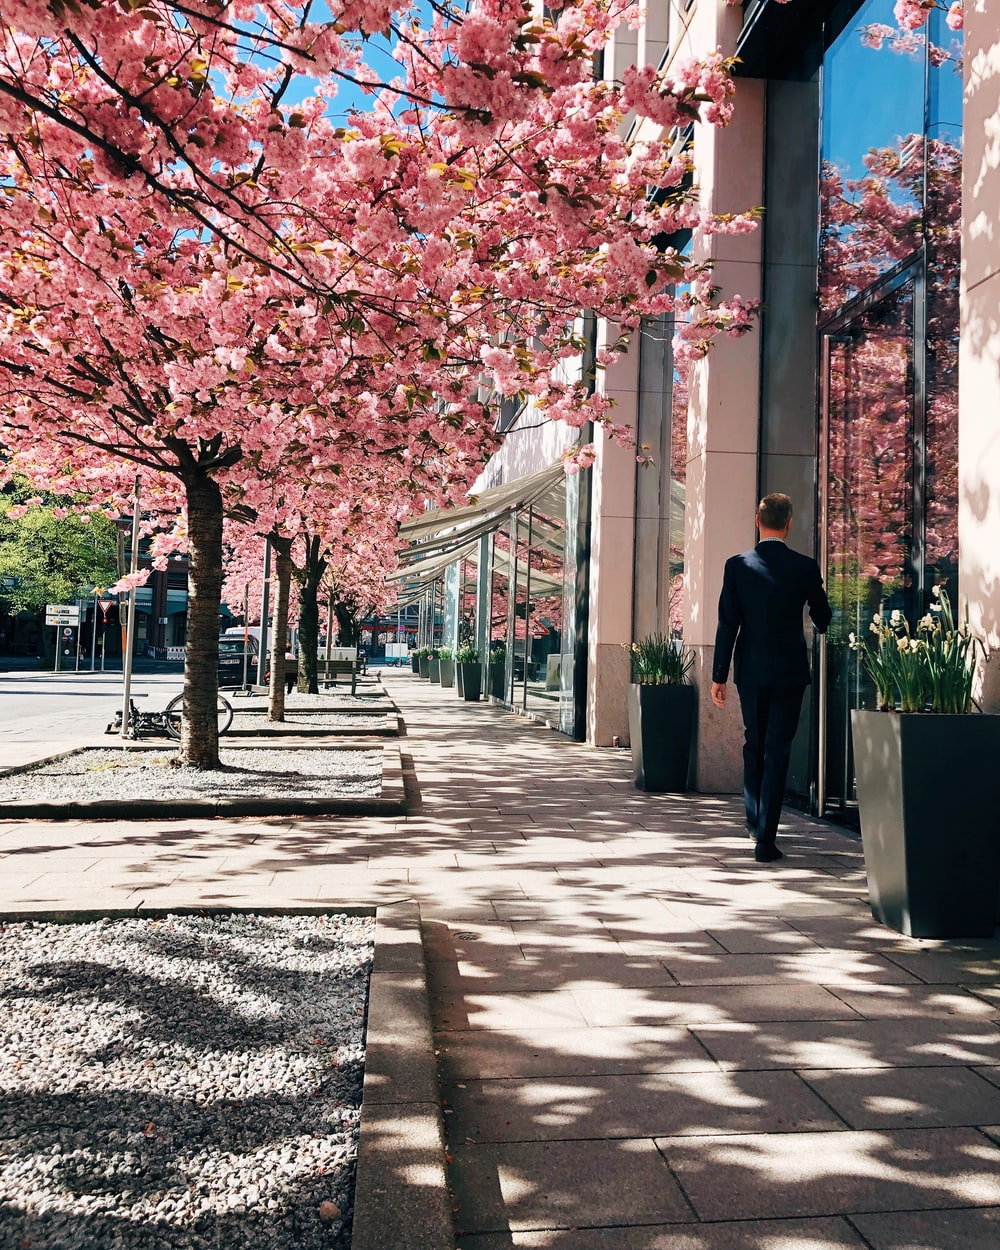 man walking near pink leafed tree